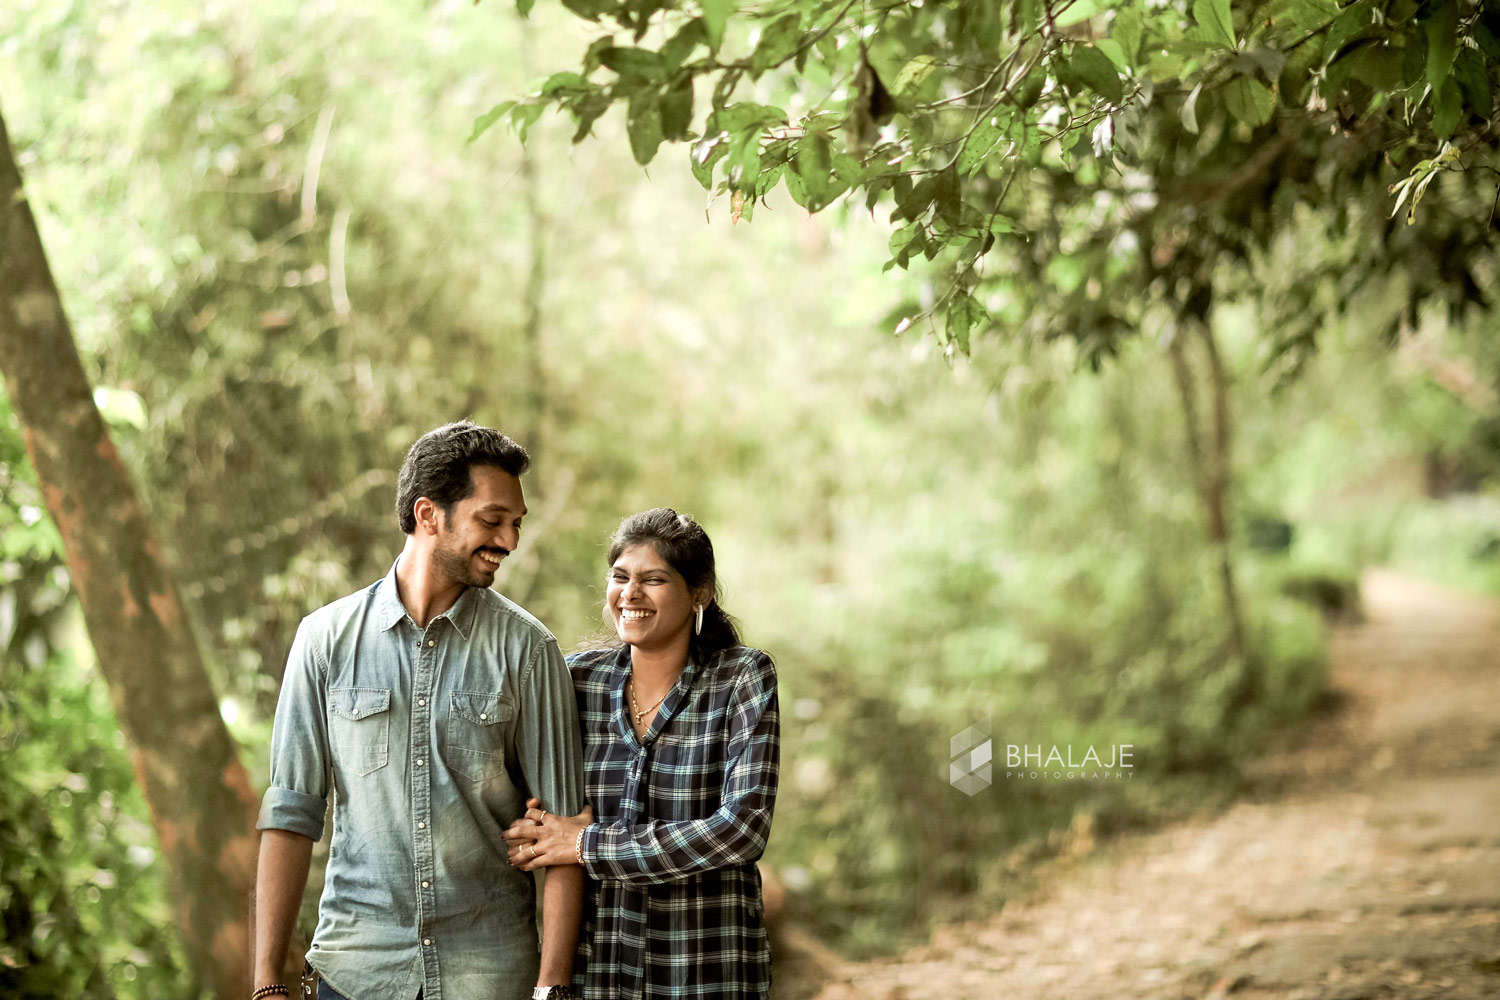 Outdoor Wedding Photography, Malayali Brahmin Wedding Photography, Kannada Brahmin Wedding Photography, Manhwa brahmin Wedding Photography, Inter Caste marriage Photography, North Indian Wedding Photography